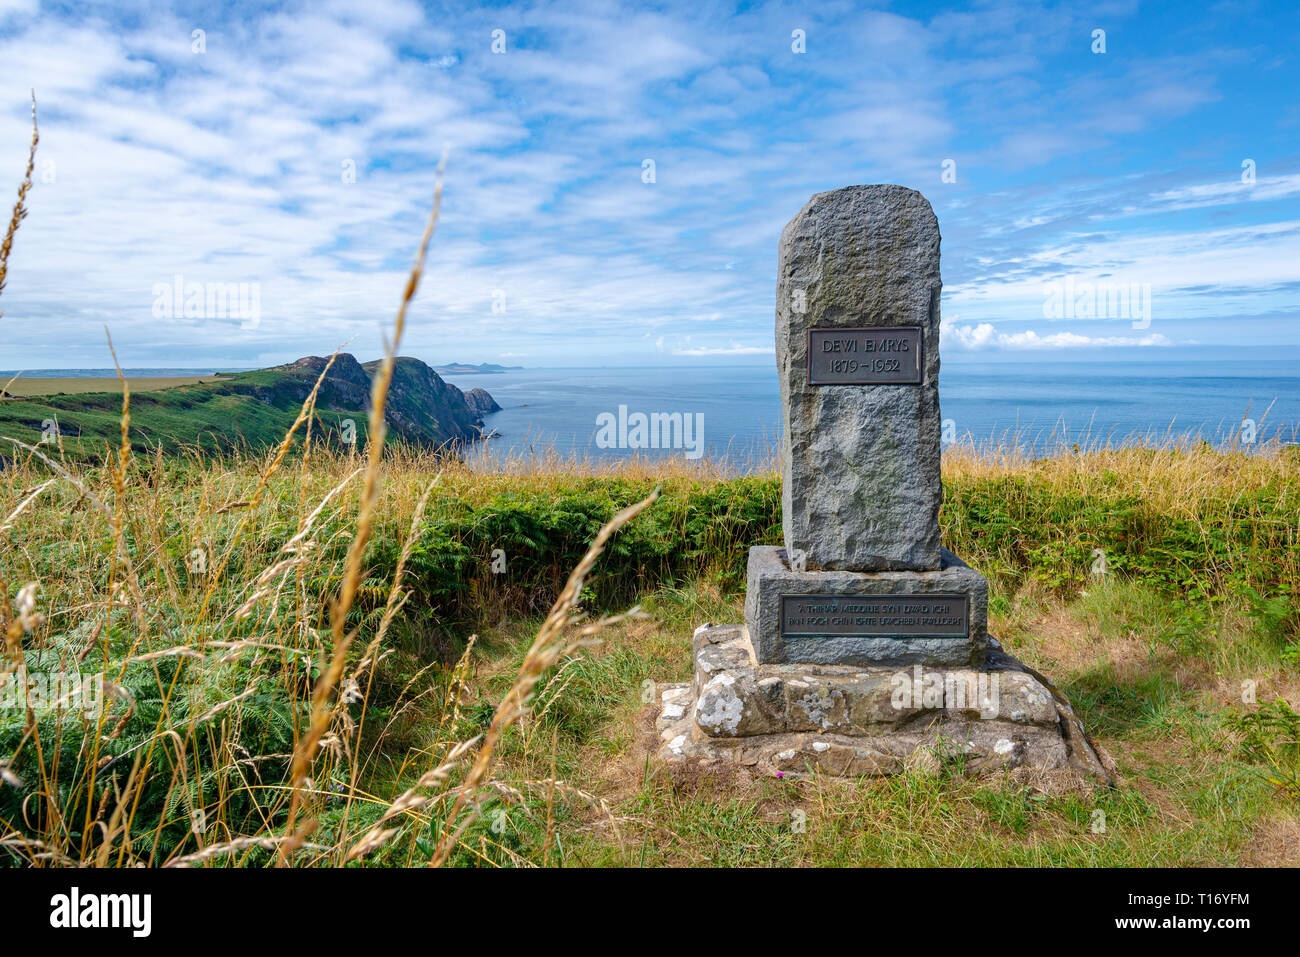 Memorial overlooking the sea to the poet Dewi Emrys in Pwll Deri, Wales, United Kingdom - Stock Image